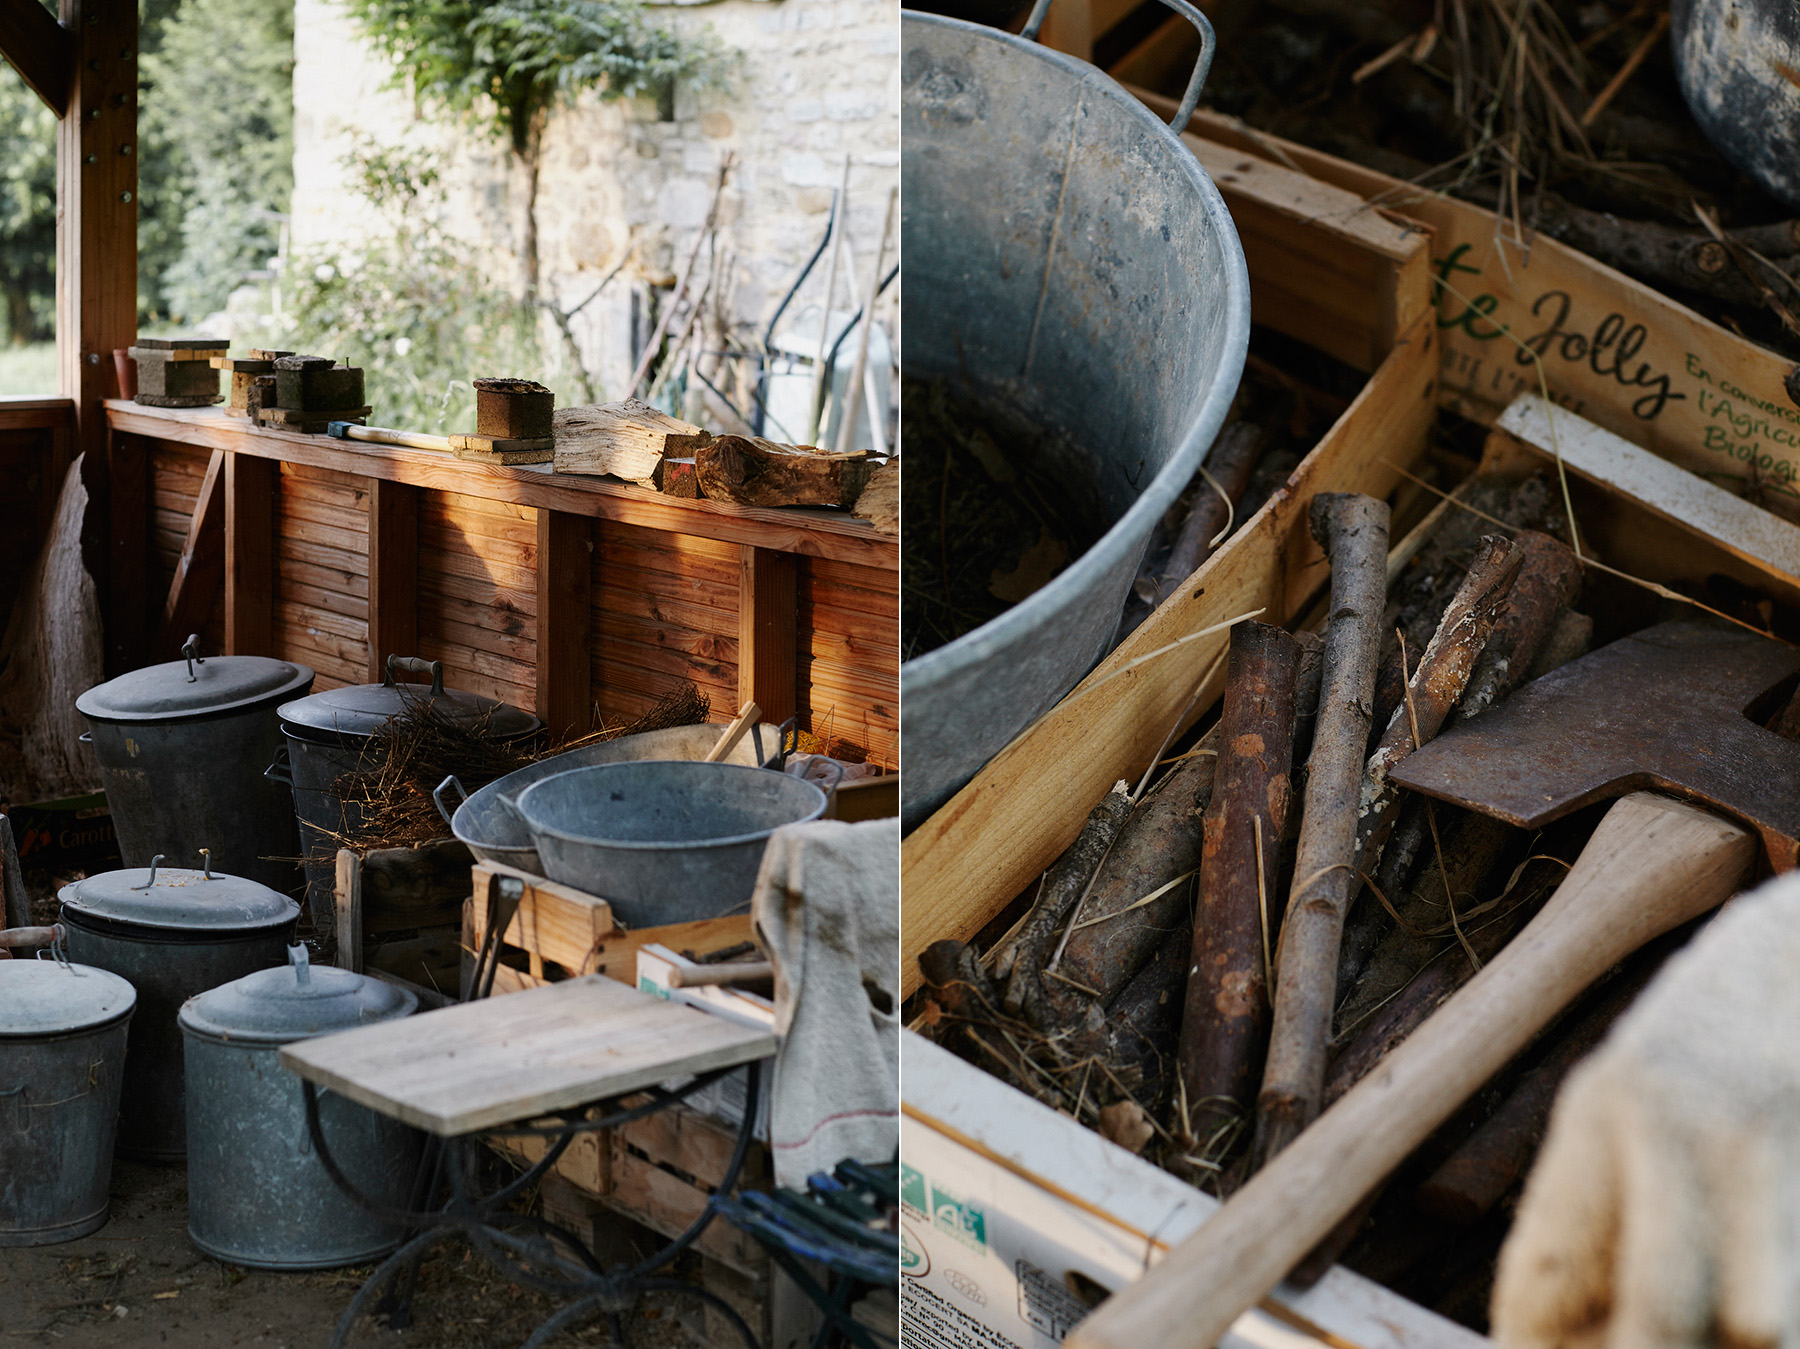 LEFT: The incandescent ceramics are 'smoked' in these metal receptacles with dried herbs and flowers from the garden. RIGHT: Detail of wood used to fuel the kiln.